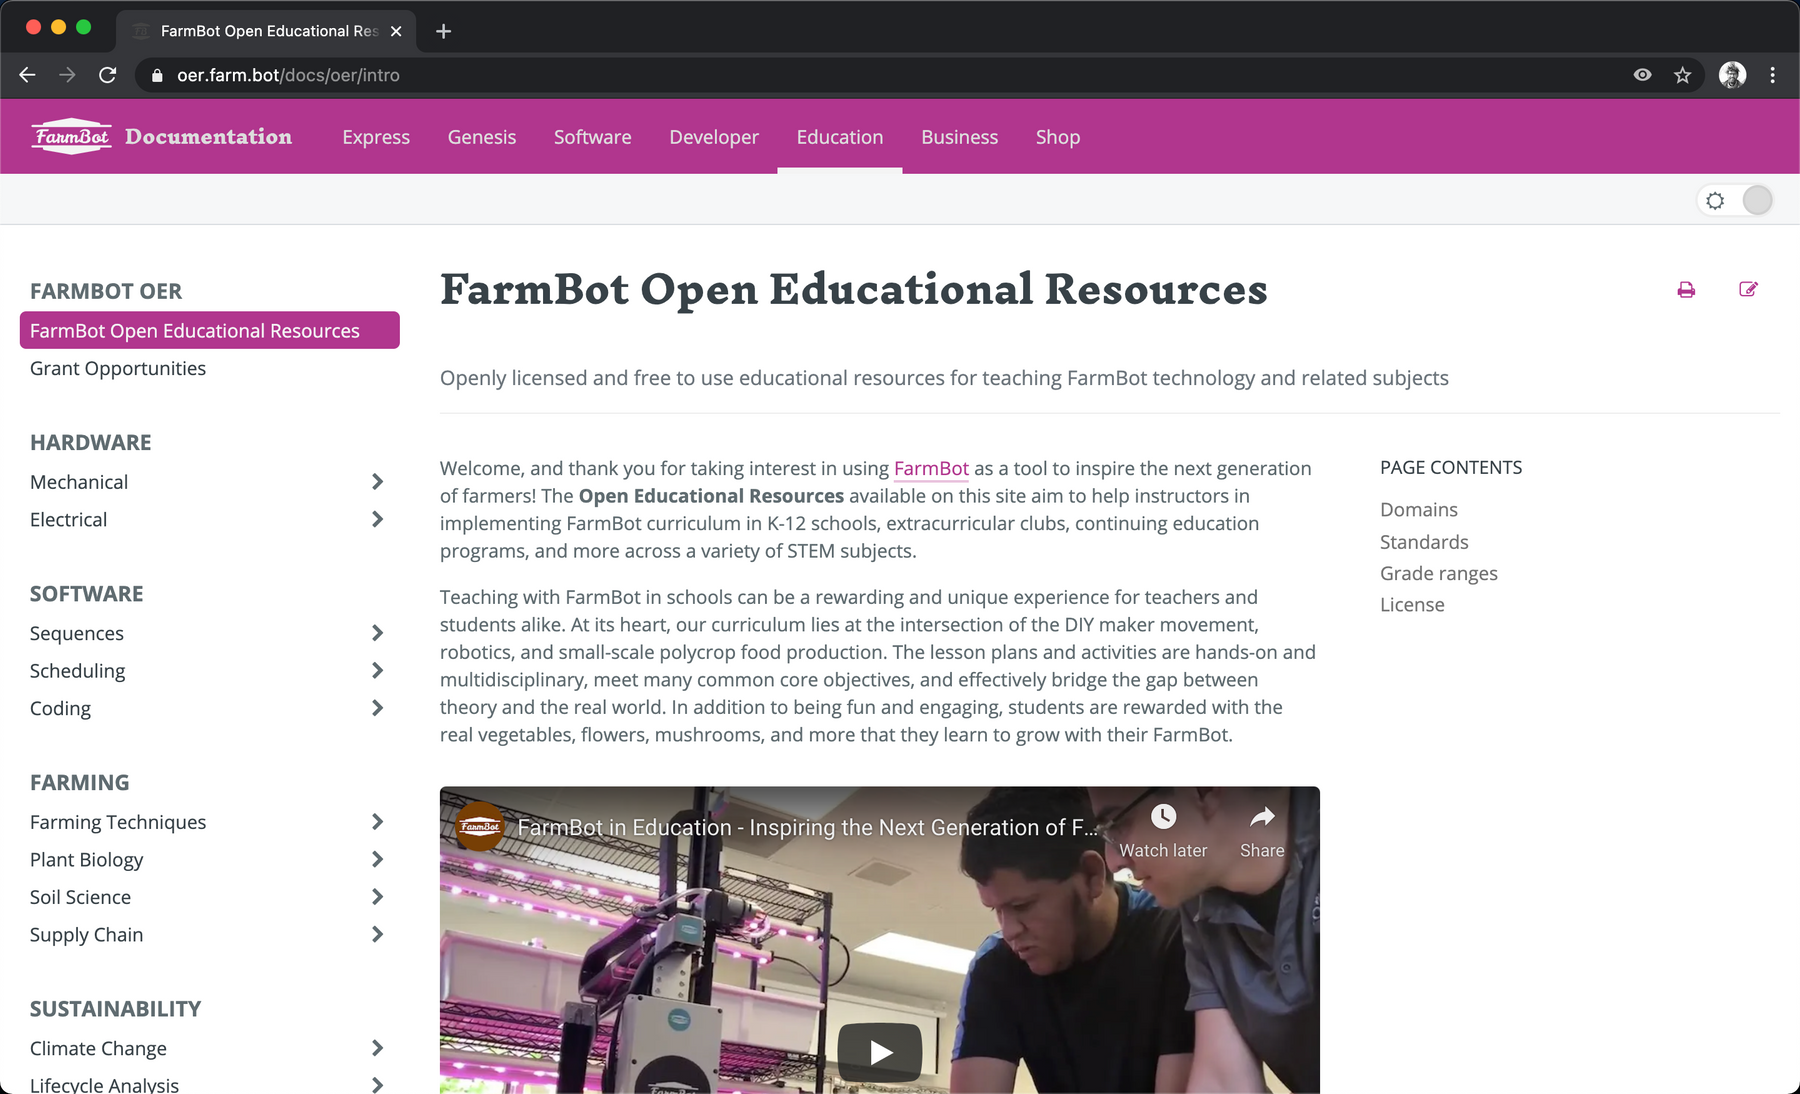 FarmBot Open Educational Resources Beta